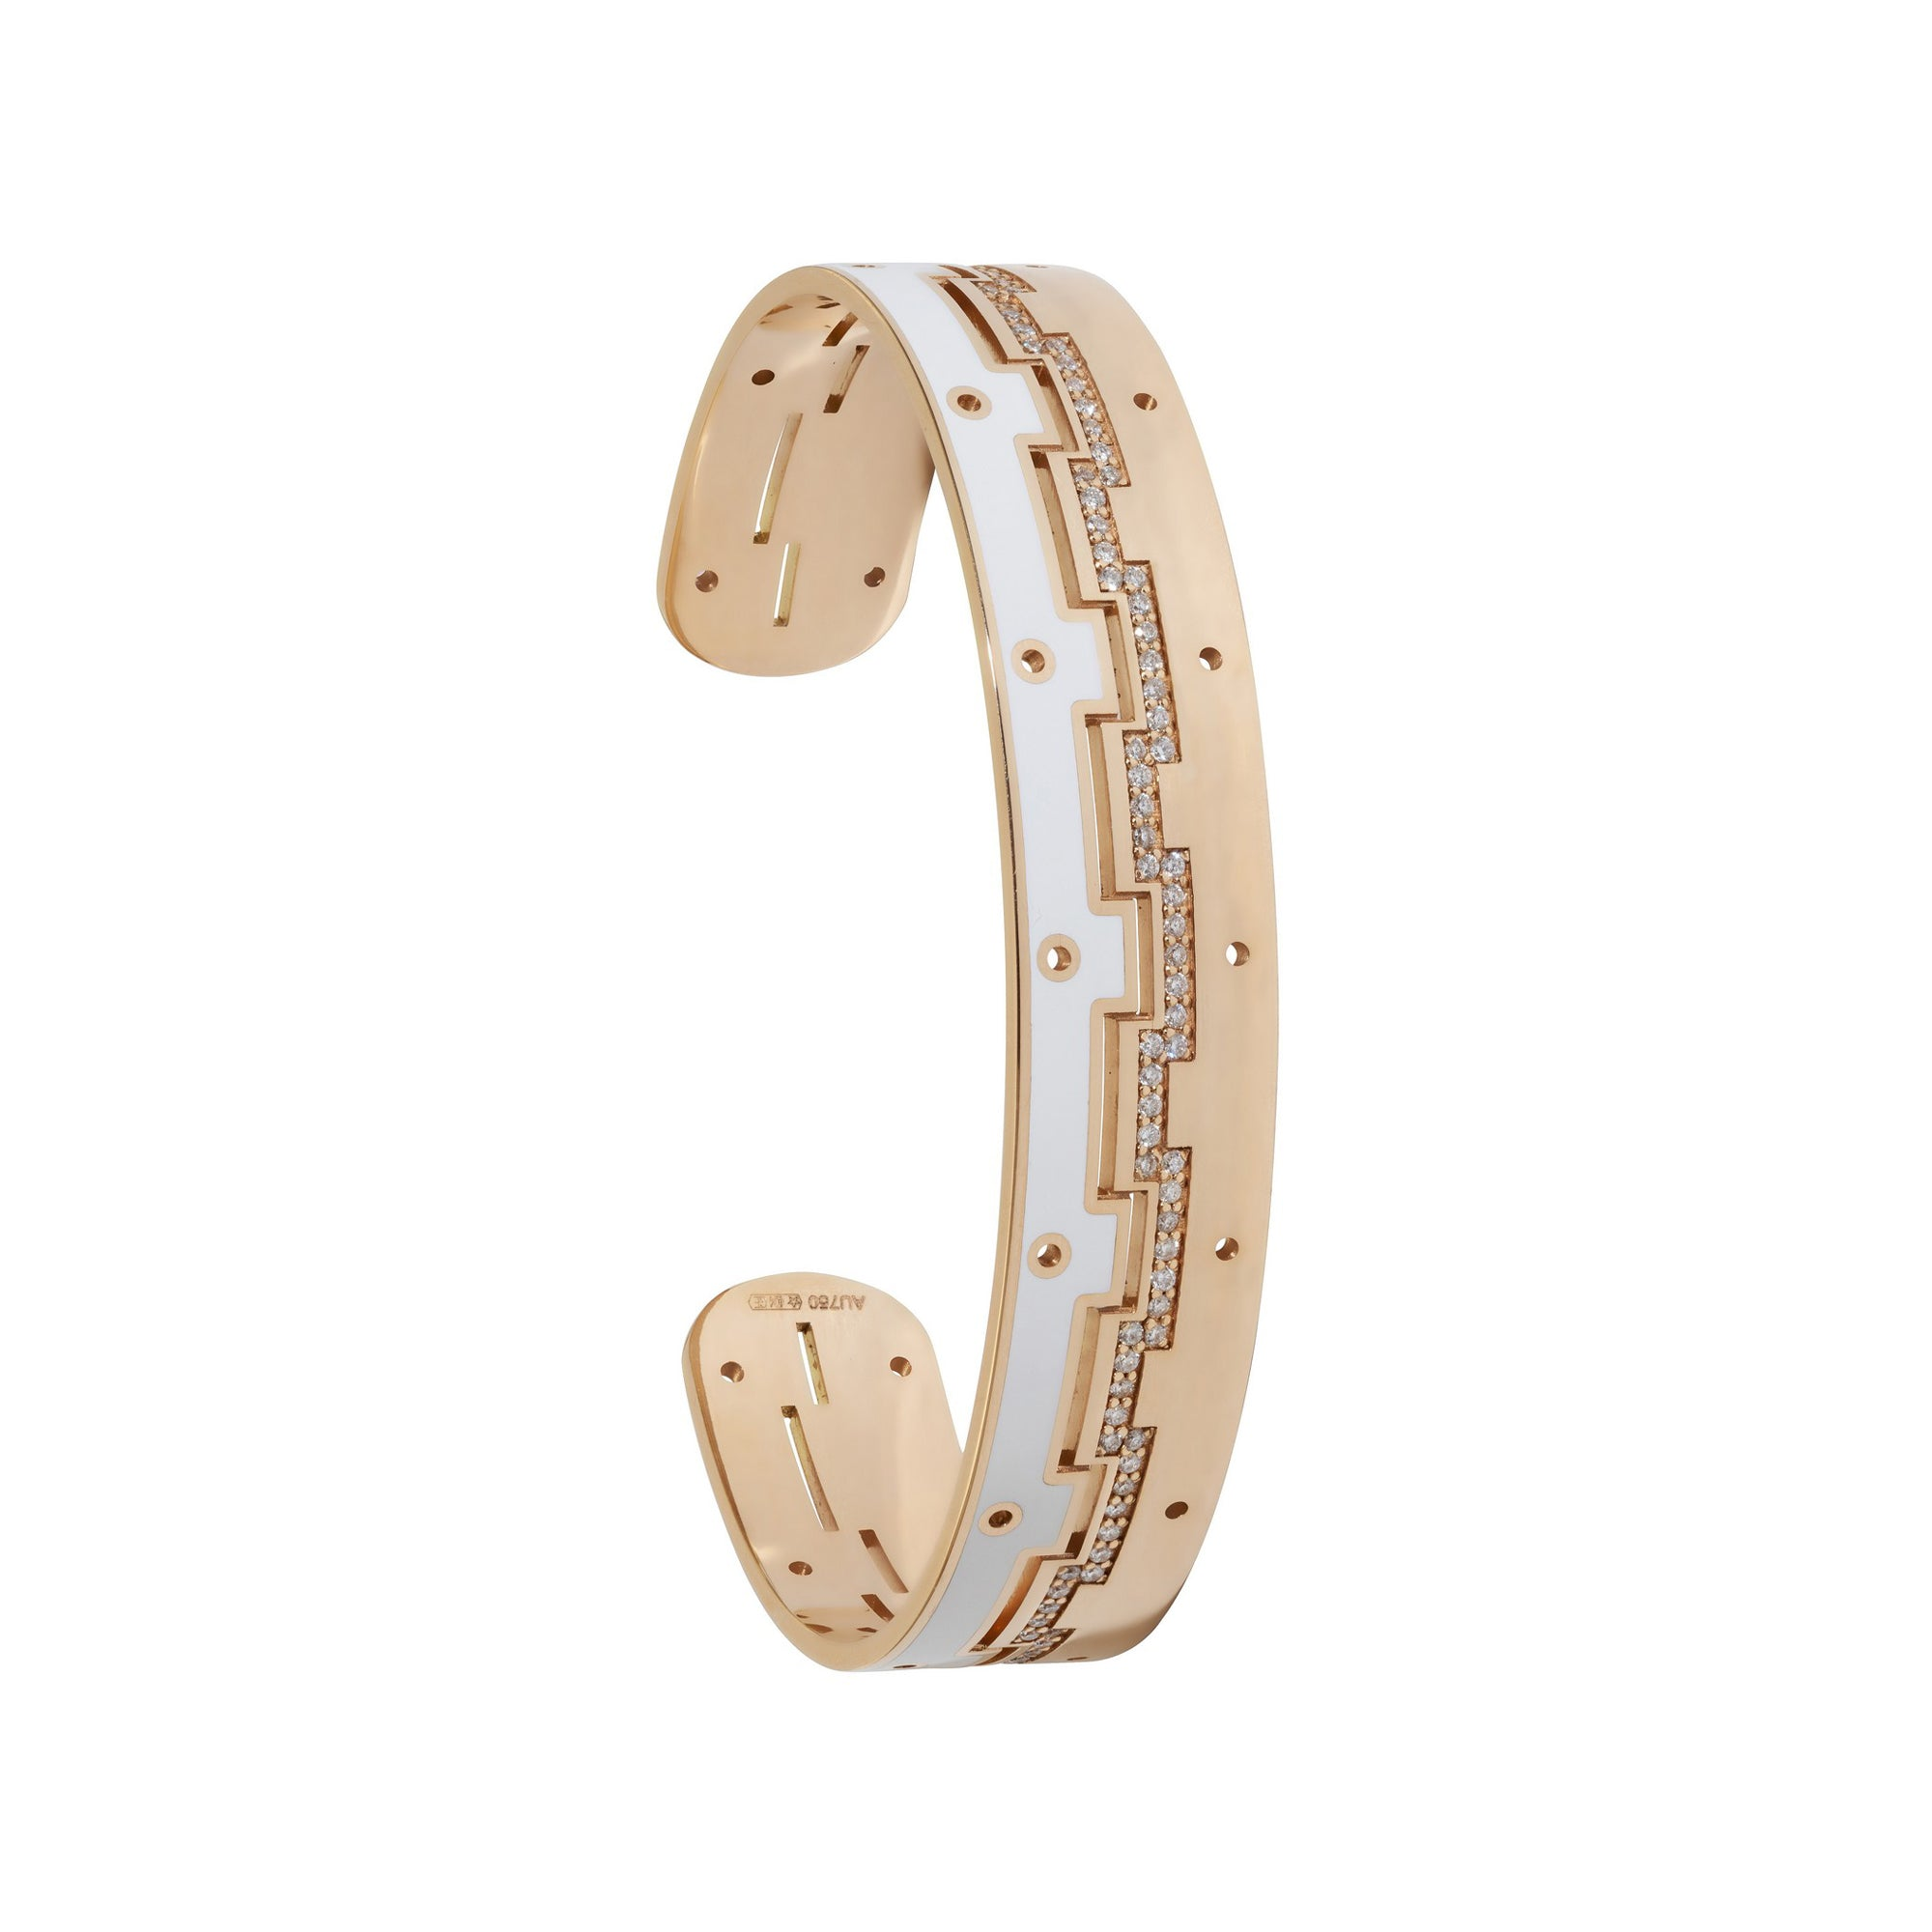 Dedalo 2020 Rose Gold Bracelet With Diamonds And White Ceramic